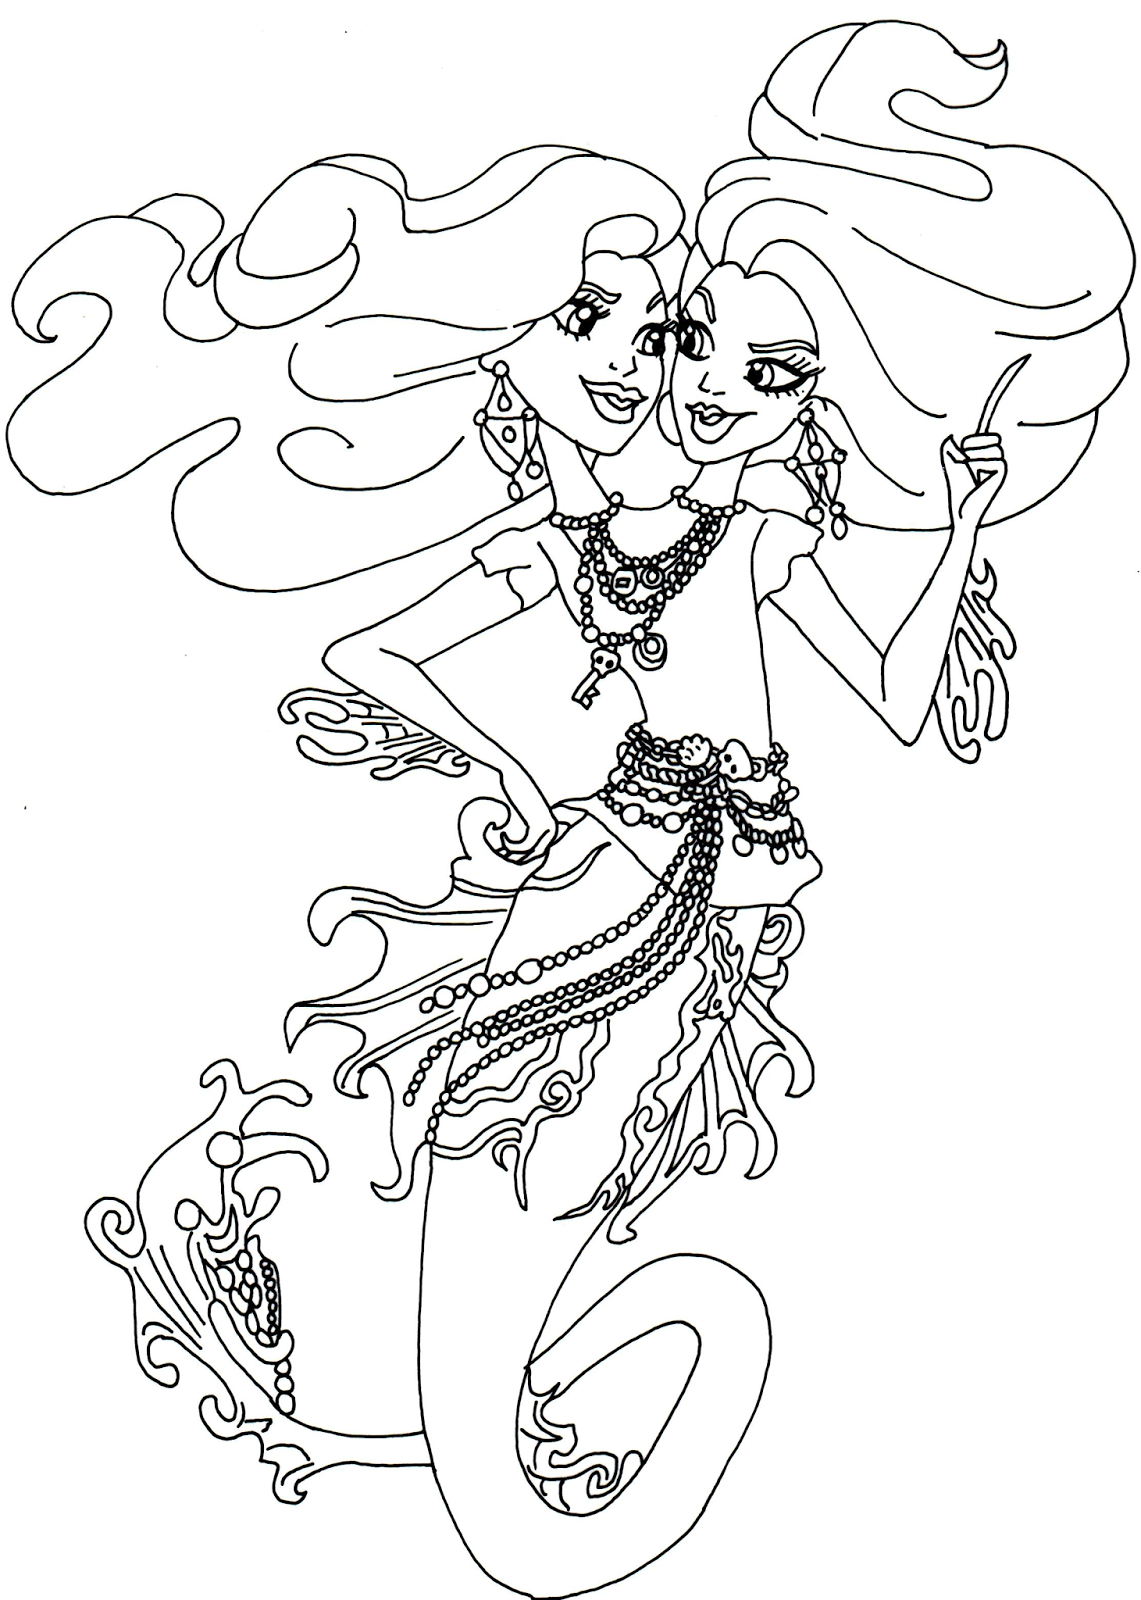 fawntine fallowheart monster high coloring page png 828 1600